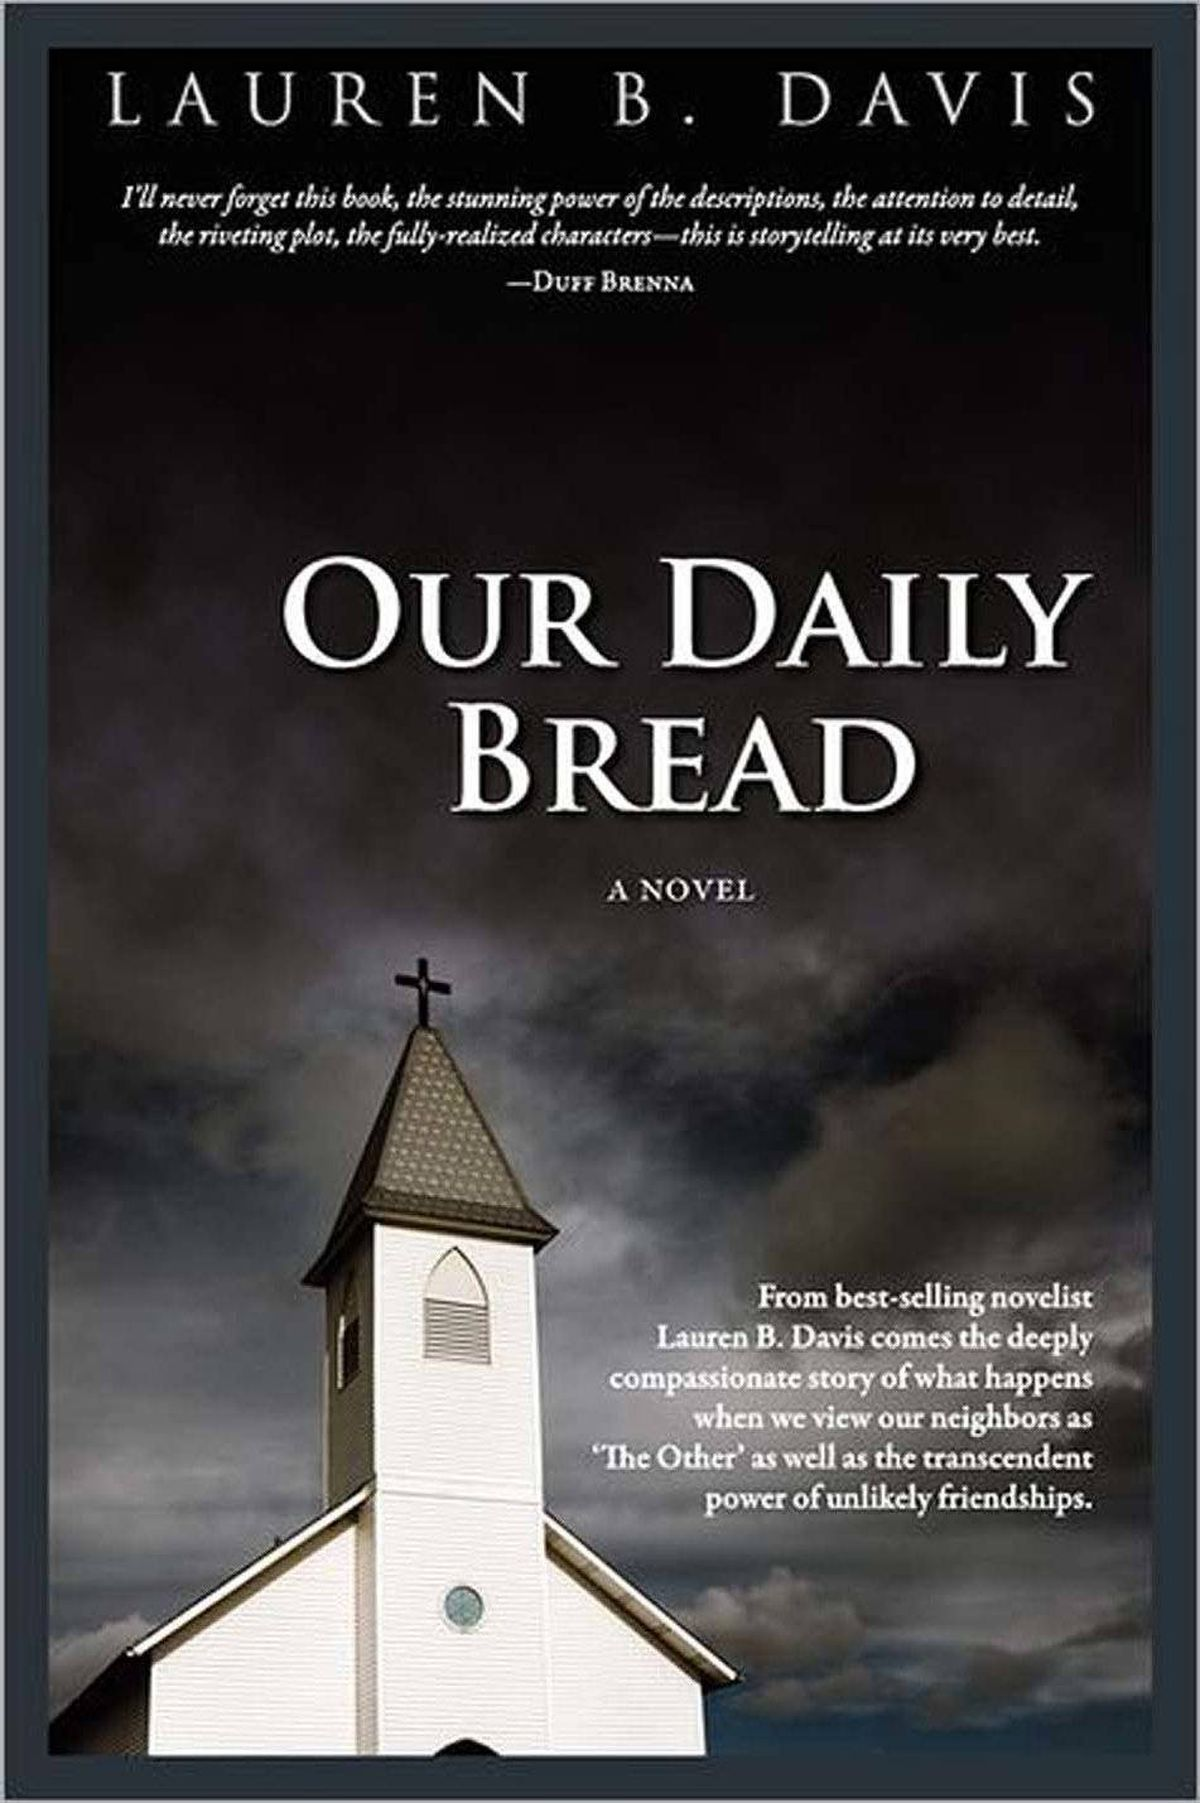 OUR DAILY BREAD By Lauren B. Davis (Wordcraft of Oregon) Trouble's brewing in the Church of Christ as religion and sin collide in a novel full of remarkable moments. Davis takes her character Dorothy on the road to the mountain of hell and offers to walk us back down. in simple, brave, powerful scenes that sit with the soul long after the book is closed. – Alan Cumyn